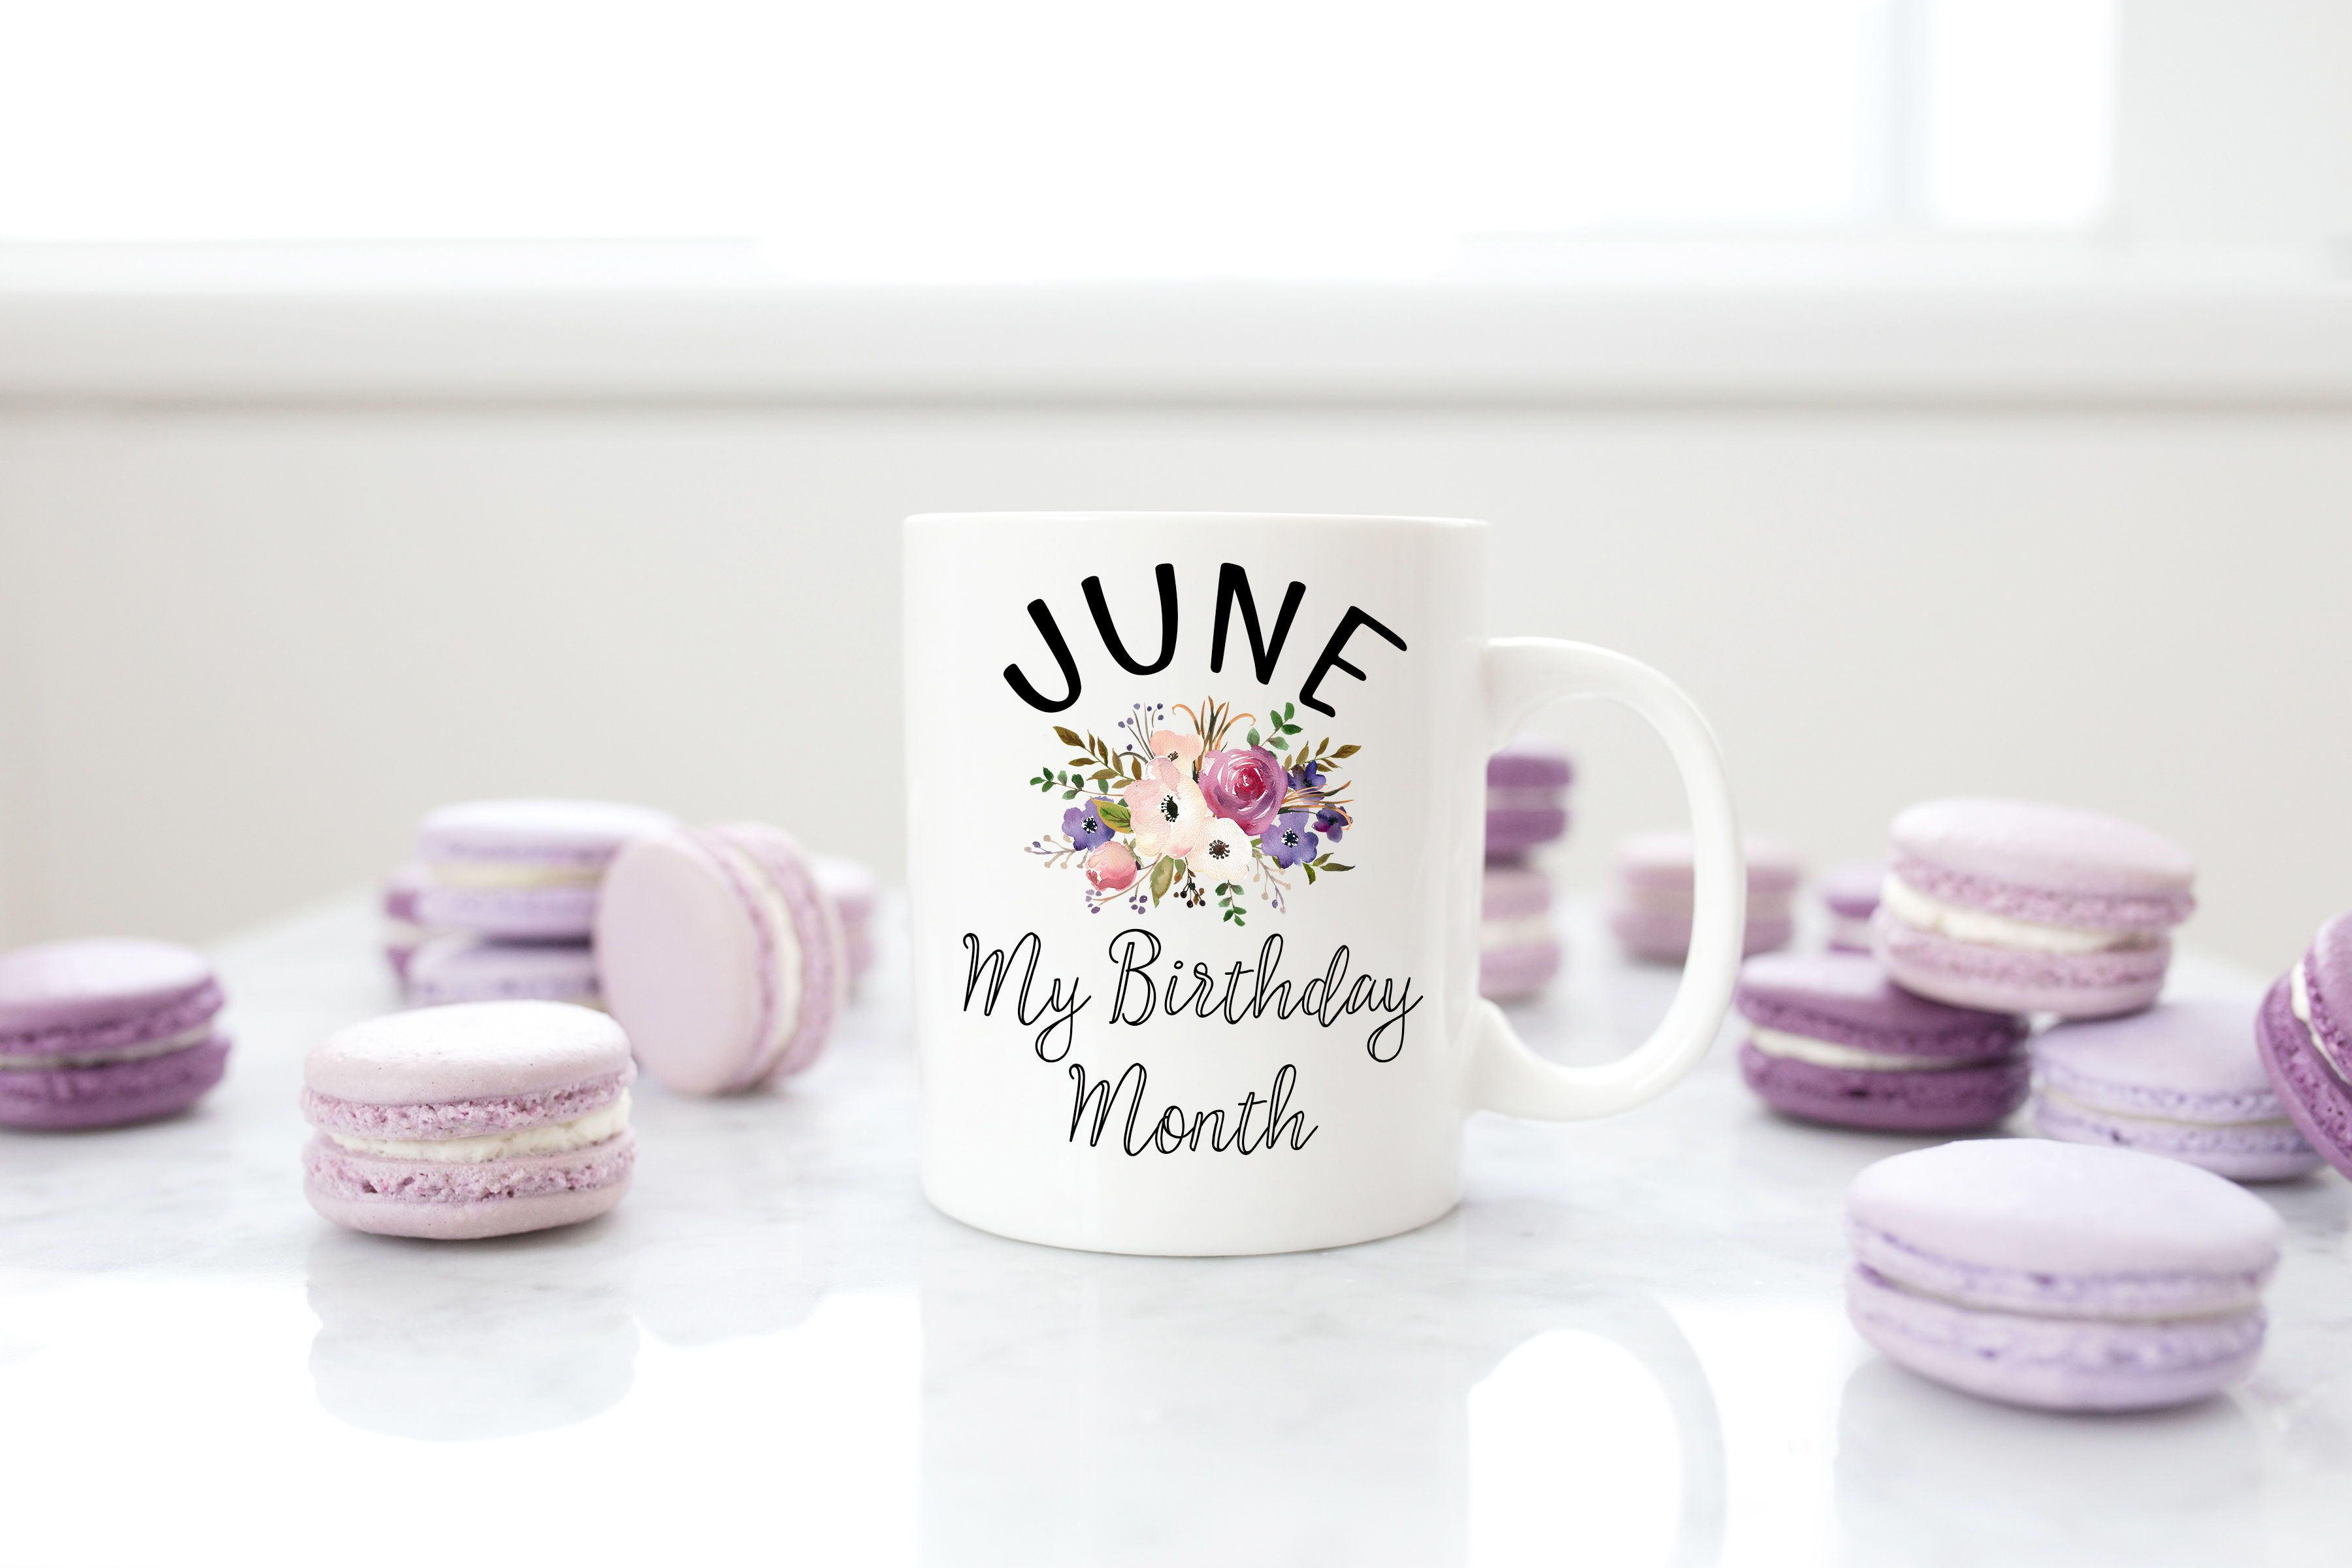 June My Birthday Month Mug, Birthday Gift, Birthday Coffee Mug